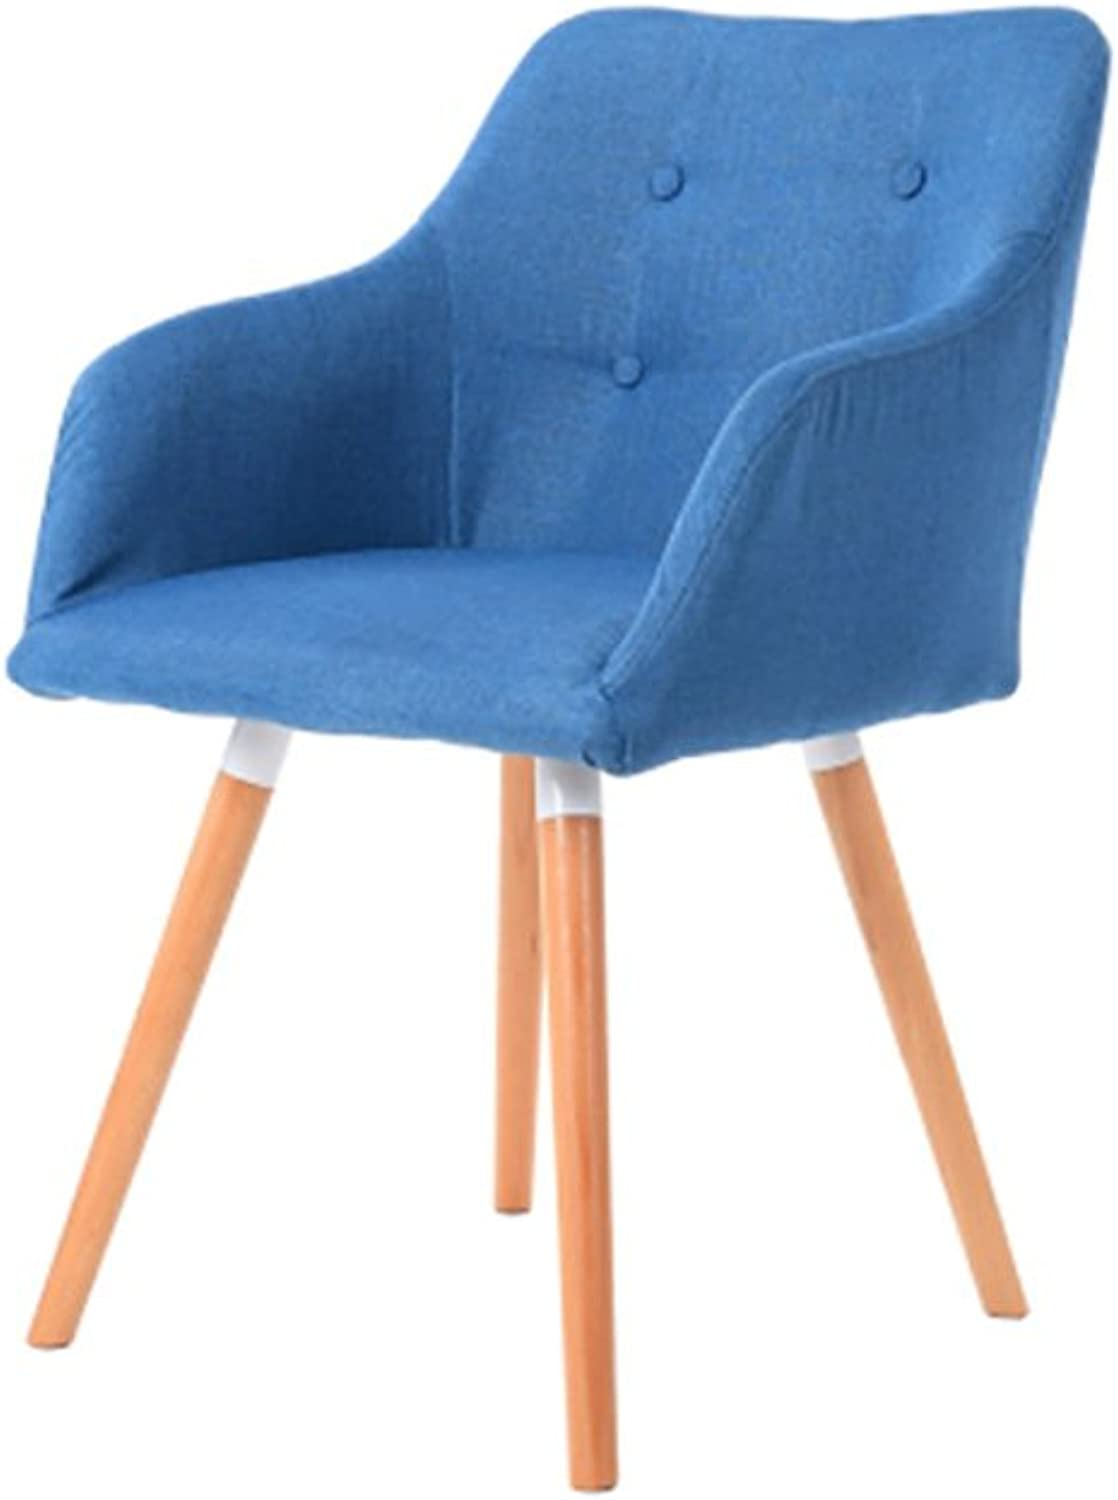 AIDELAI Bar Stool Chair- European Solid Wood Dining Chair Sofa Chair Lounge Chair Fabric Modern Minimalist Dining Chair Backrest Book Tables and Chairs (60  40  80cm) (color   I)